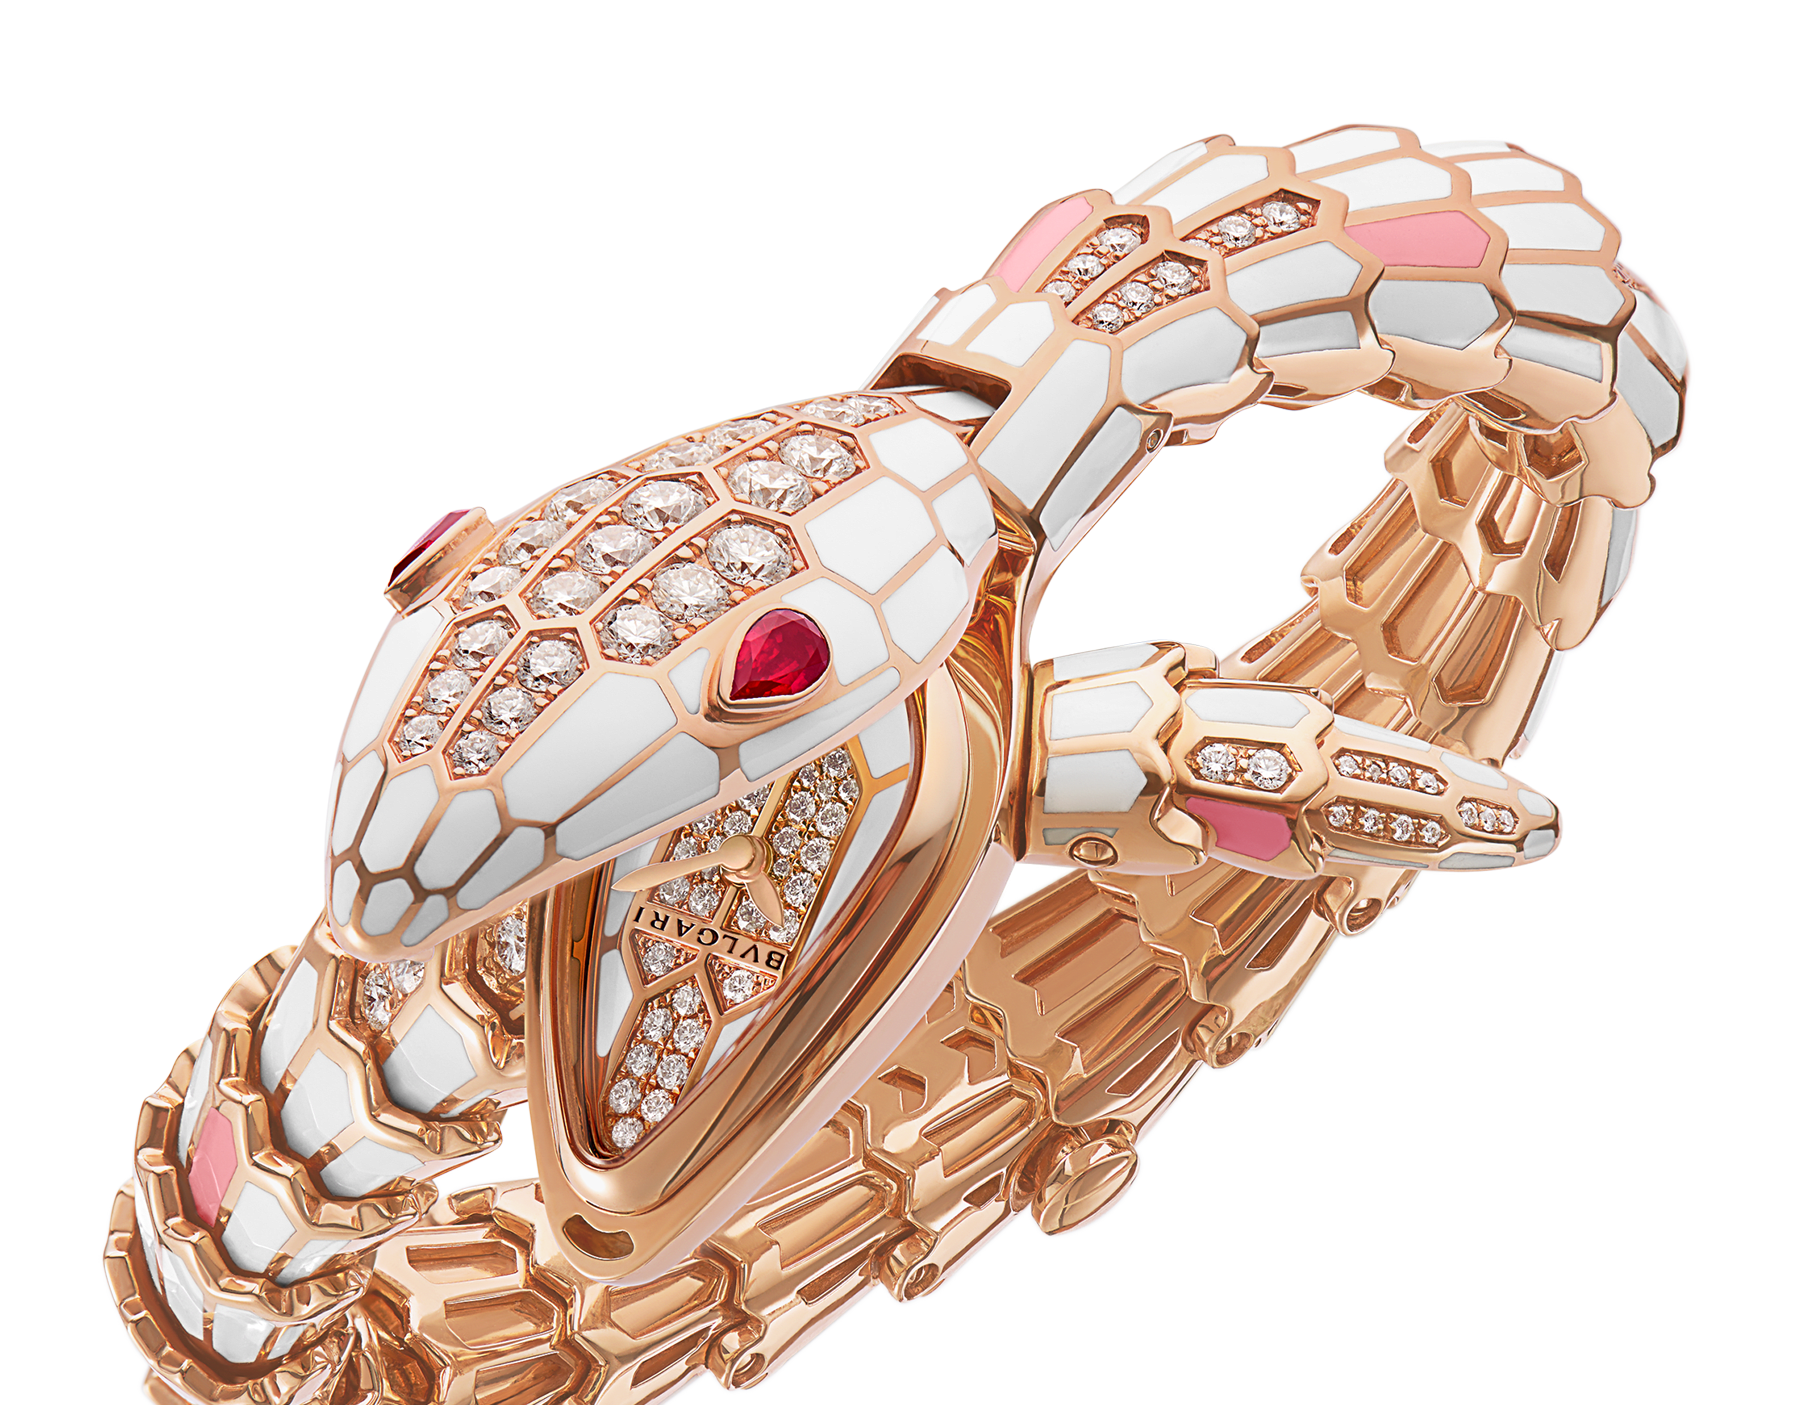 Serpenti Secret Watch with 18 kt rose gold head coated with beige lacquer and set with pavé diamonds and ruby eyes, 18 kt rose gold case, 18 kt rose gold dial set with brilliant cut diamonds, 18 kt rose gold single spiral bracelet set with brilliant cut diamonds and coated with beige and pink lacquer. 102444 image 2